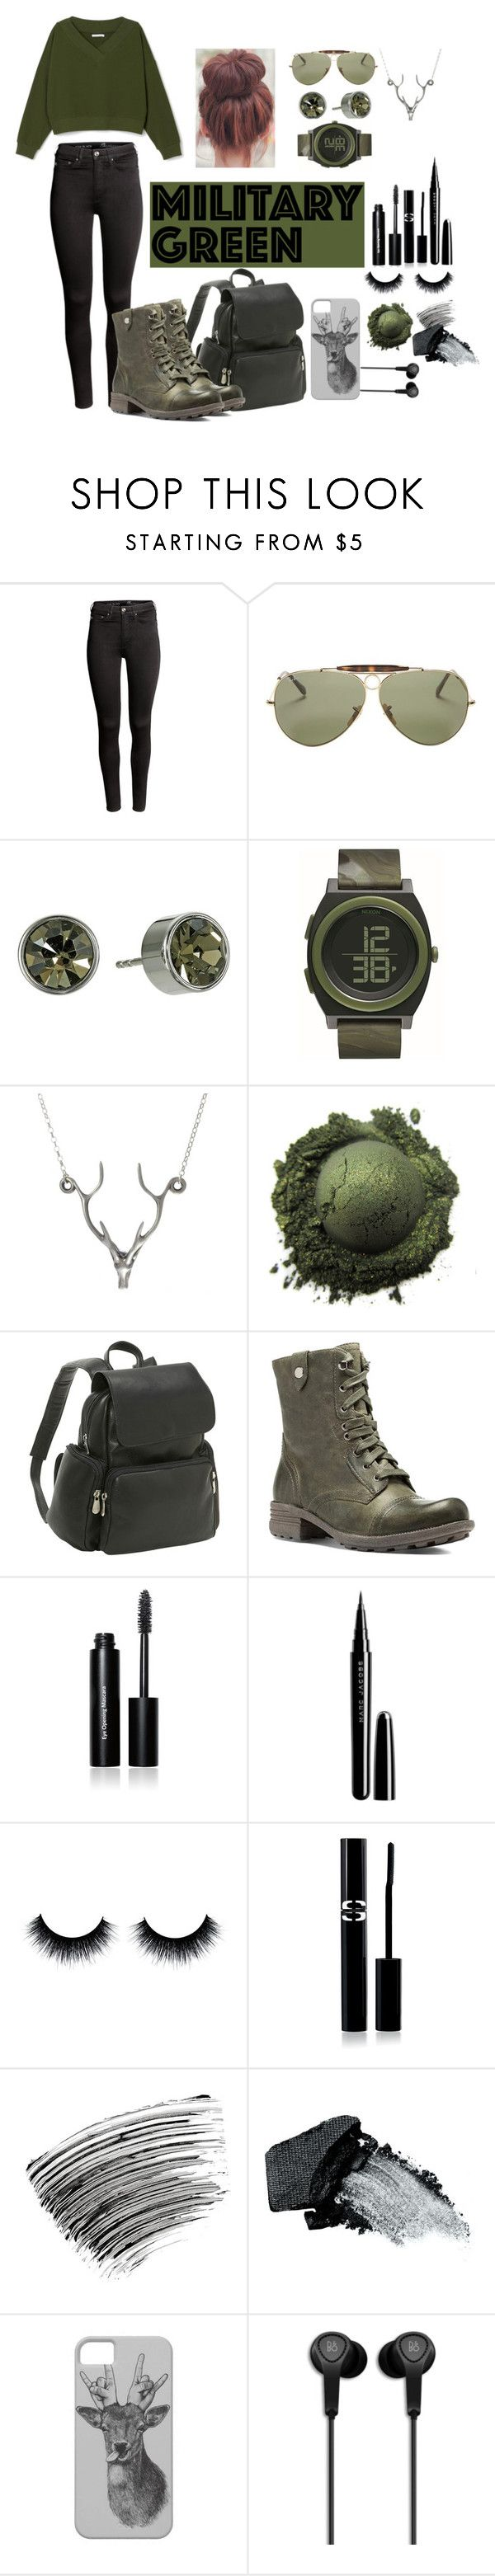 """""""Attention! Go Army Green - Contest Entry"""" by unicornlover6280 ❤ liked on Polyvore featuring H&M, Ray-Ban, Michael Kors, Nixon, Lee Renee, Le Donne, Cobb Hill, Bobbi Brown Cosmetics, Marc Jacobs and Sisley Paris"""